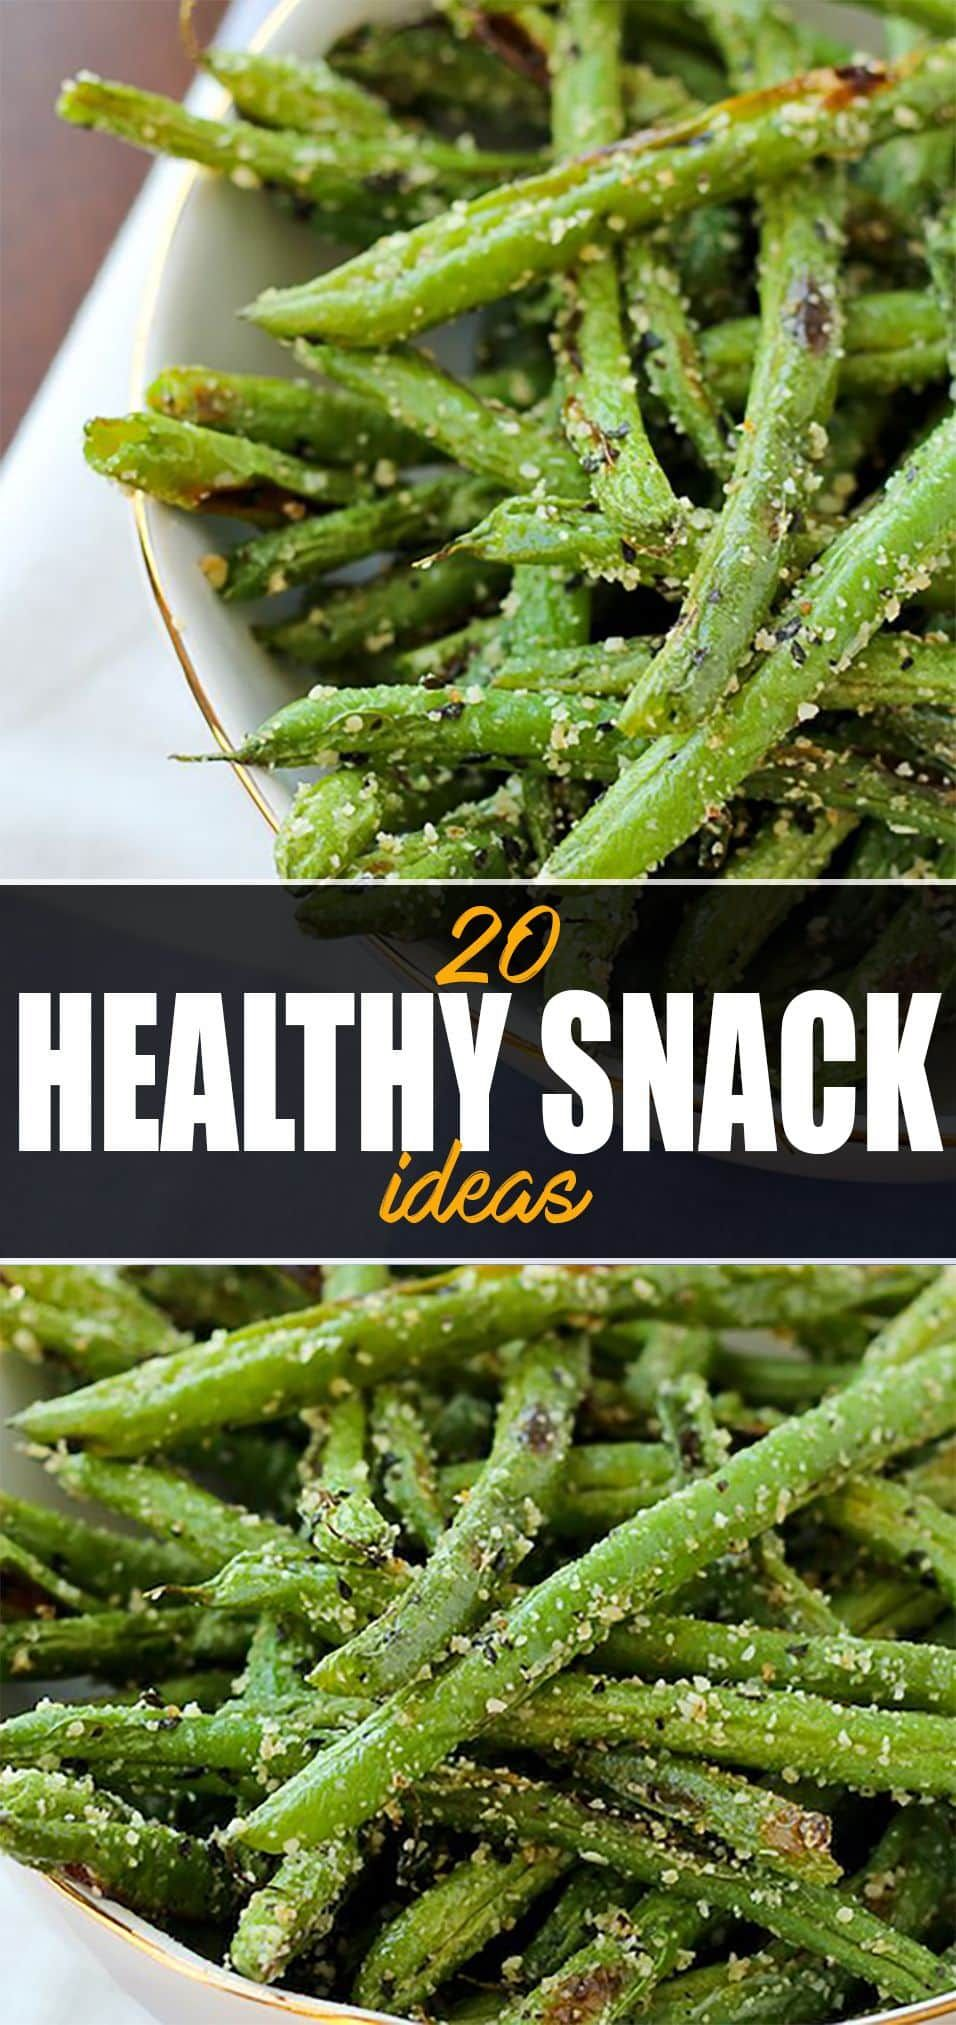 20 Easy Healthy Snack Ideas - The Best Snacks For Weight Loss - Page 2 of 3 #weightloss